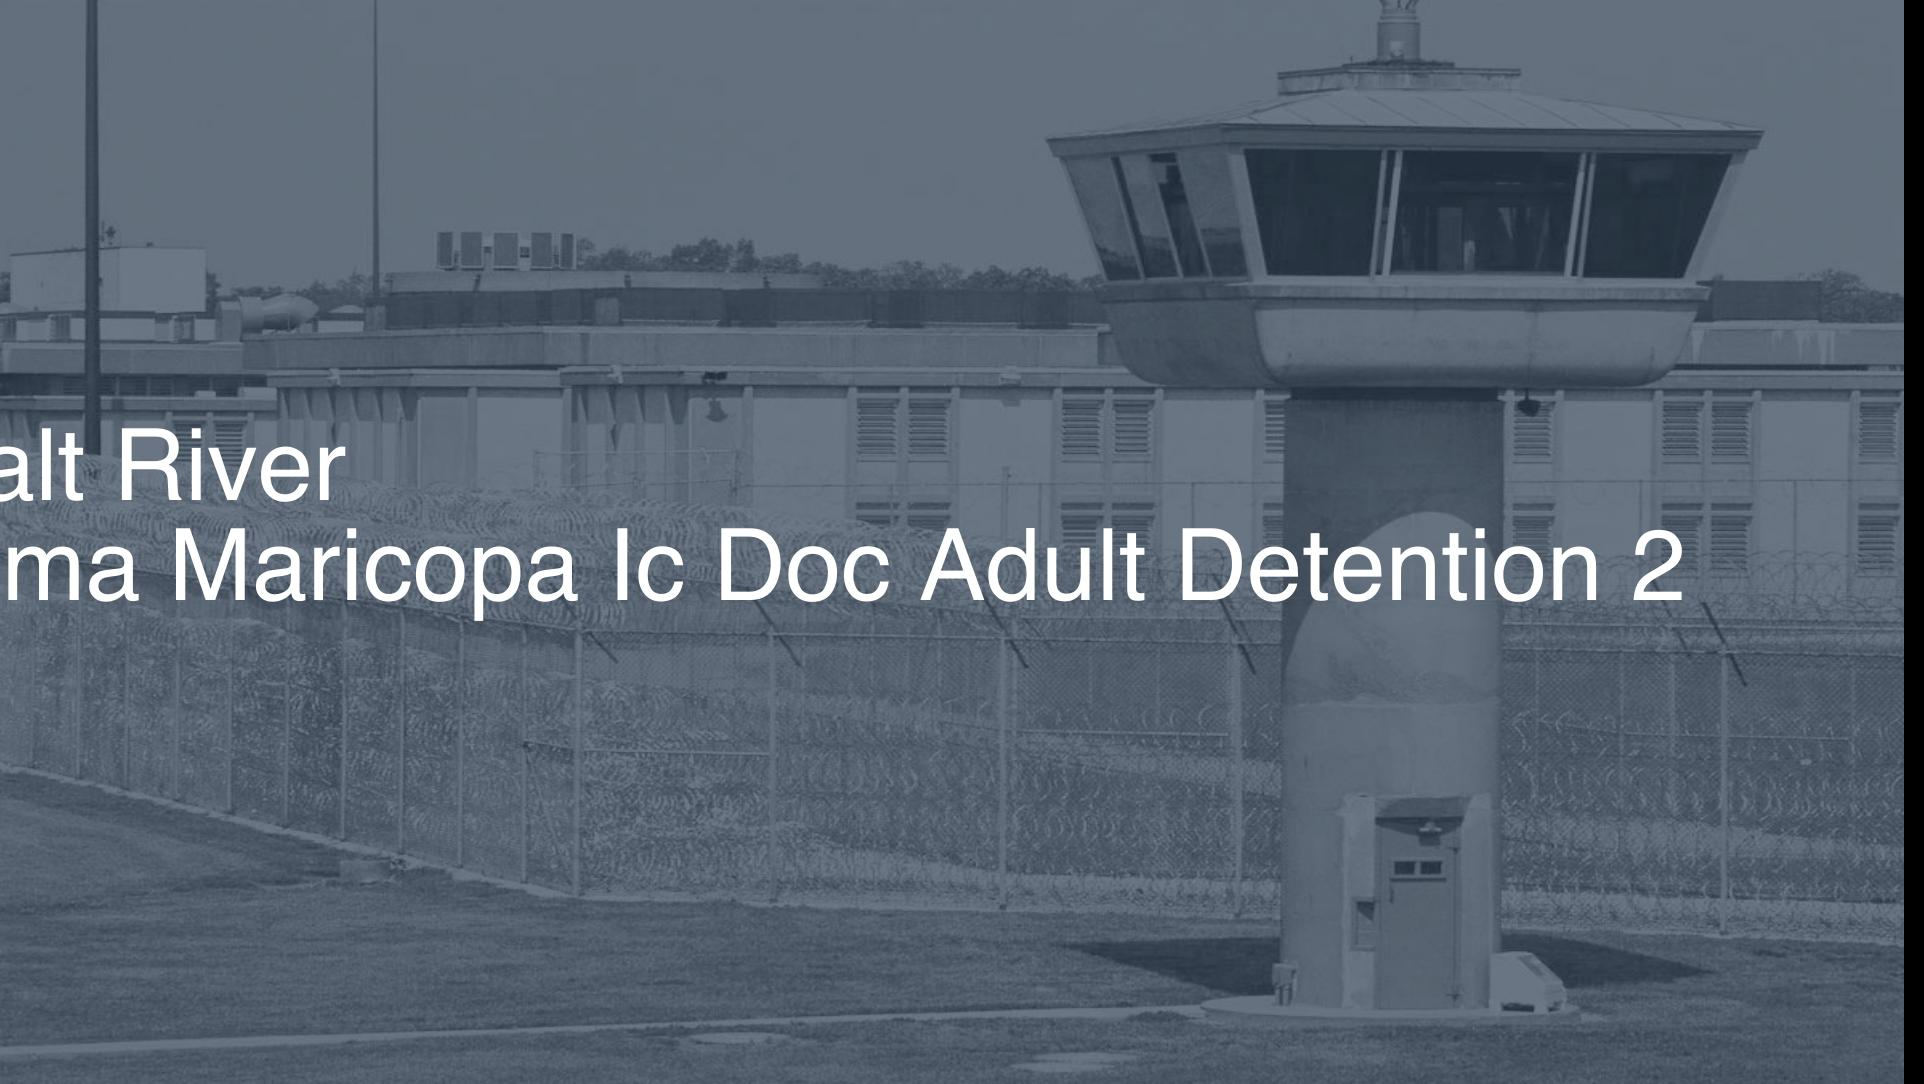 Salt River Pima Maricopa IC-DOC Adult Detention correctional facility picture